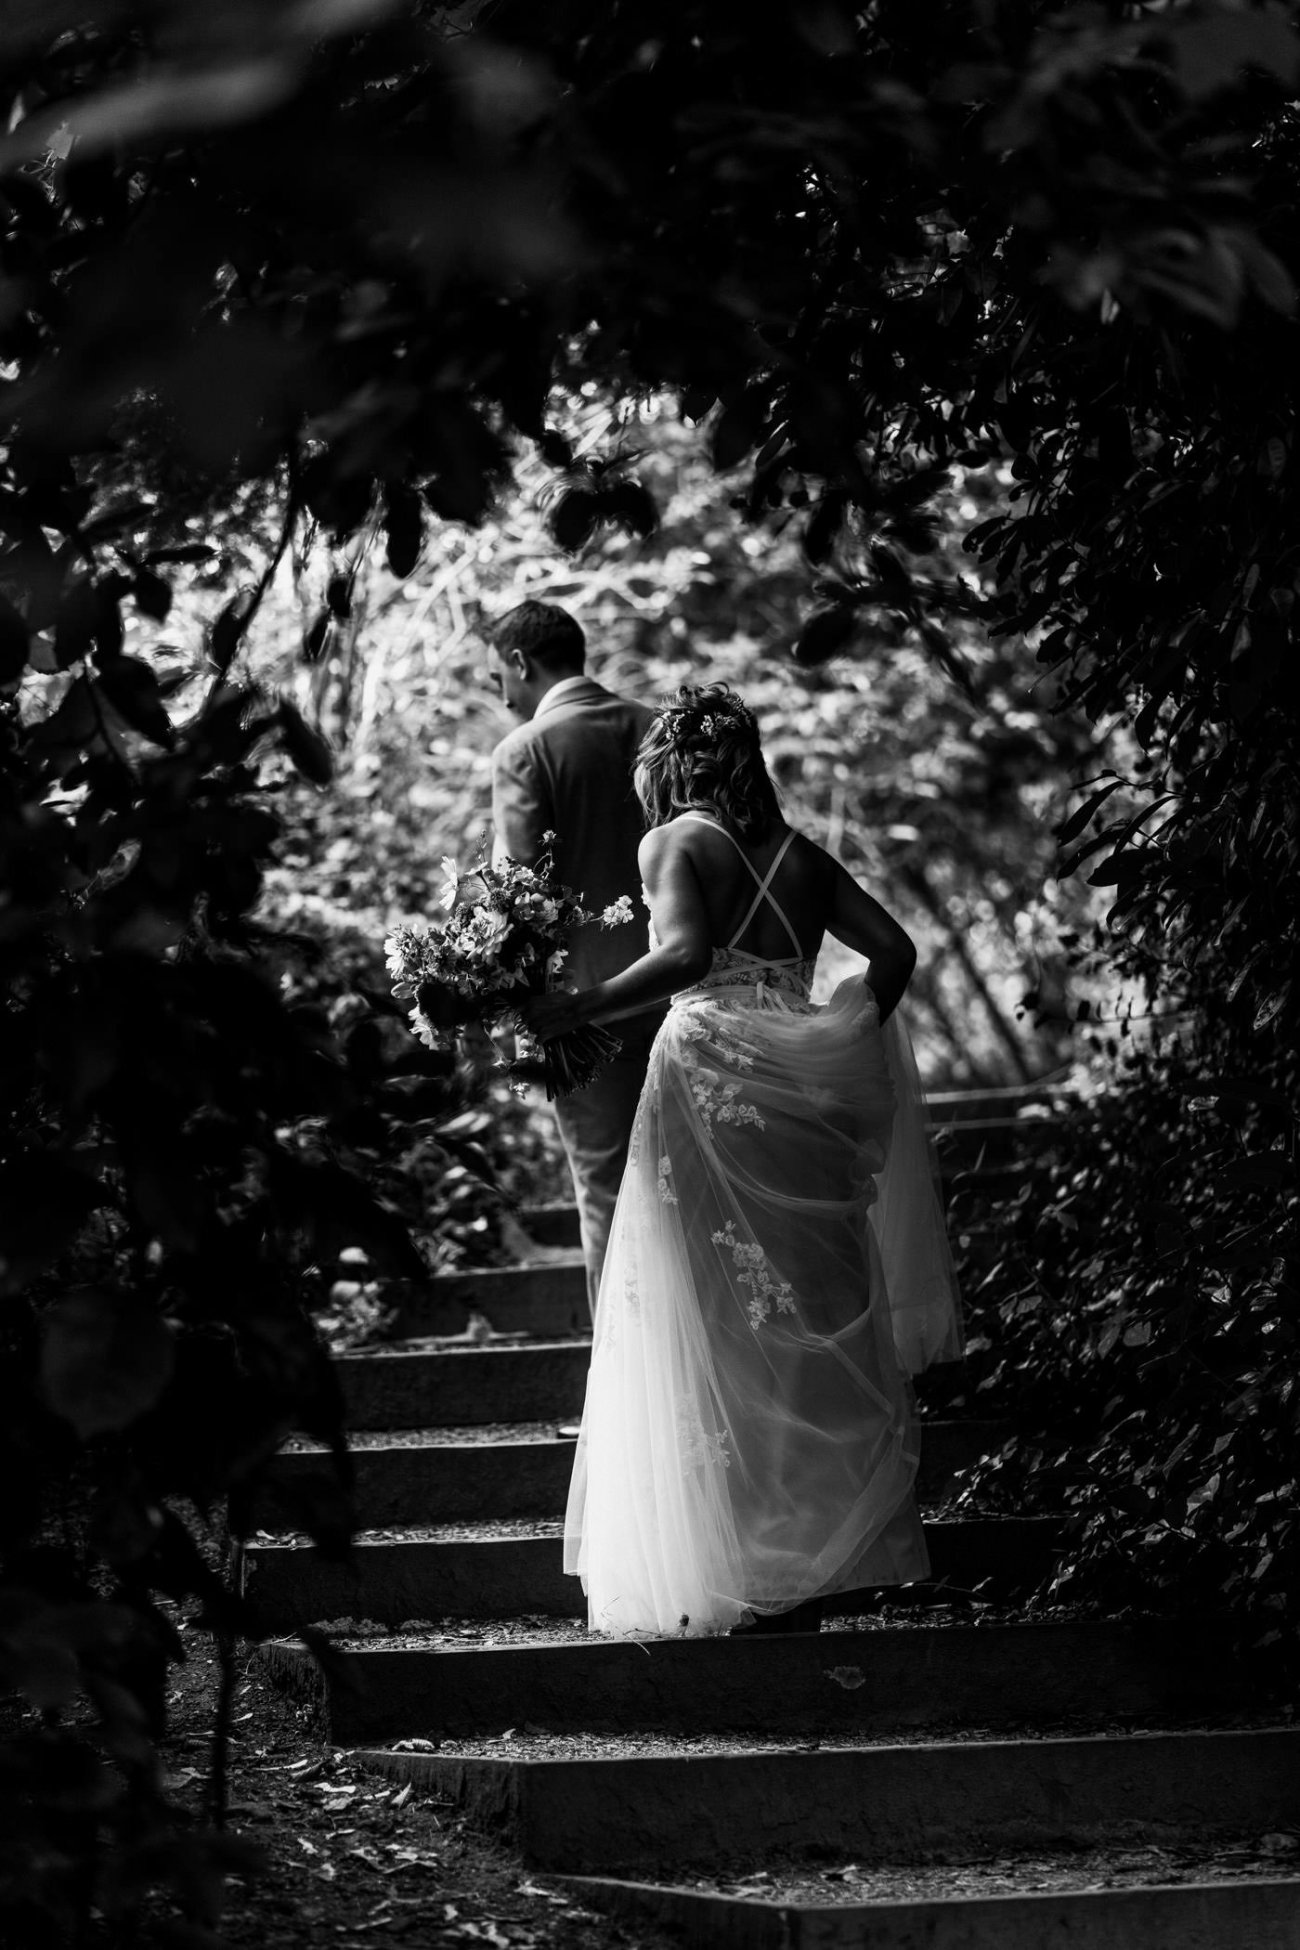 Black and white picture of bride and groom walking up stairs at Stephens House & Gardens wedding